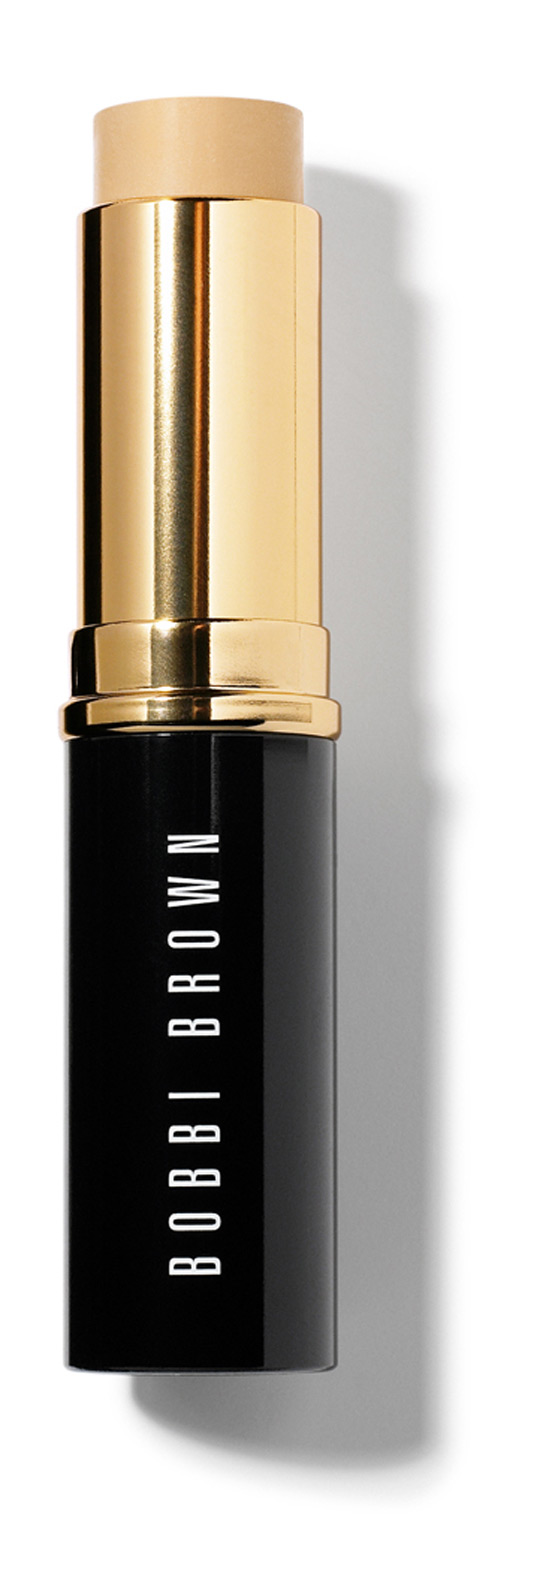 Bobbi Brown Foundation Stick, P2,350. If you blend well, the creamy formulas will give you a flawless finish. I like that the coverage is buildable, too. I prefer to highlight with creams, so I suggest you try the shade Sand.